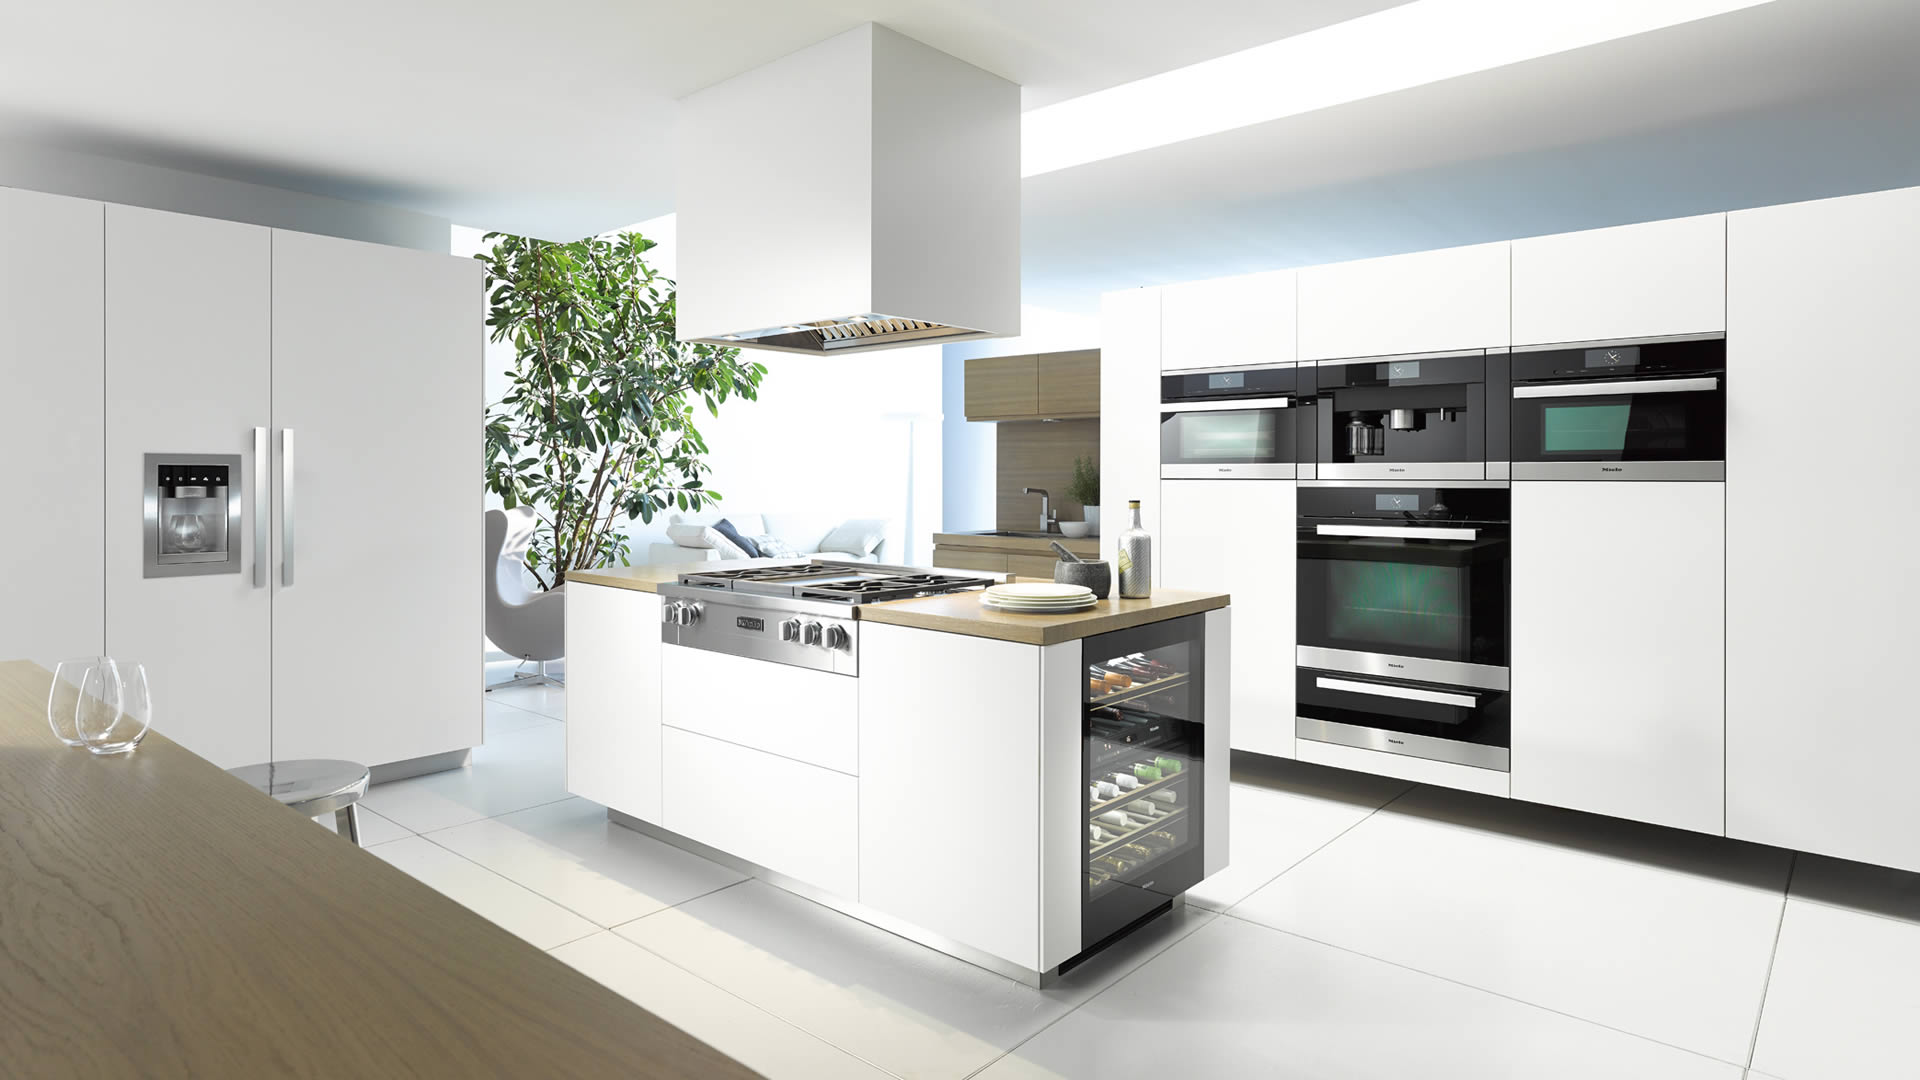 miele kitchen countertops michigan fine luxury appliances nordic kitchens and baths inc